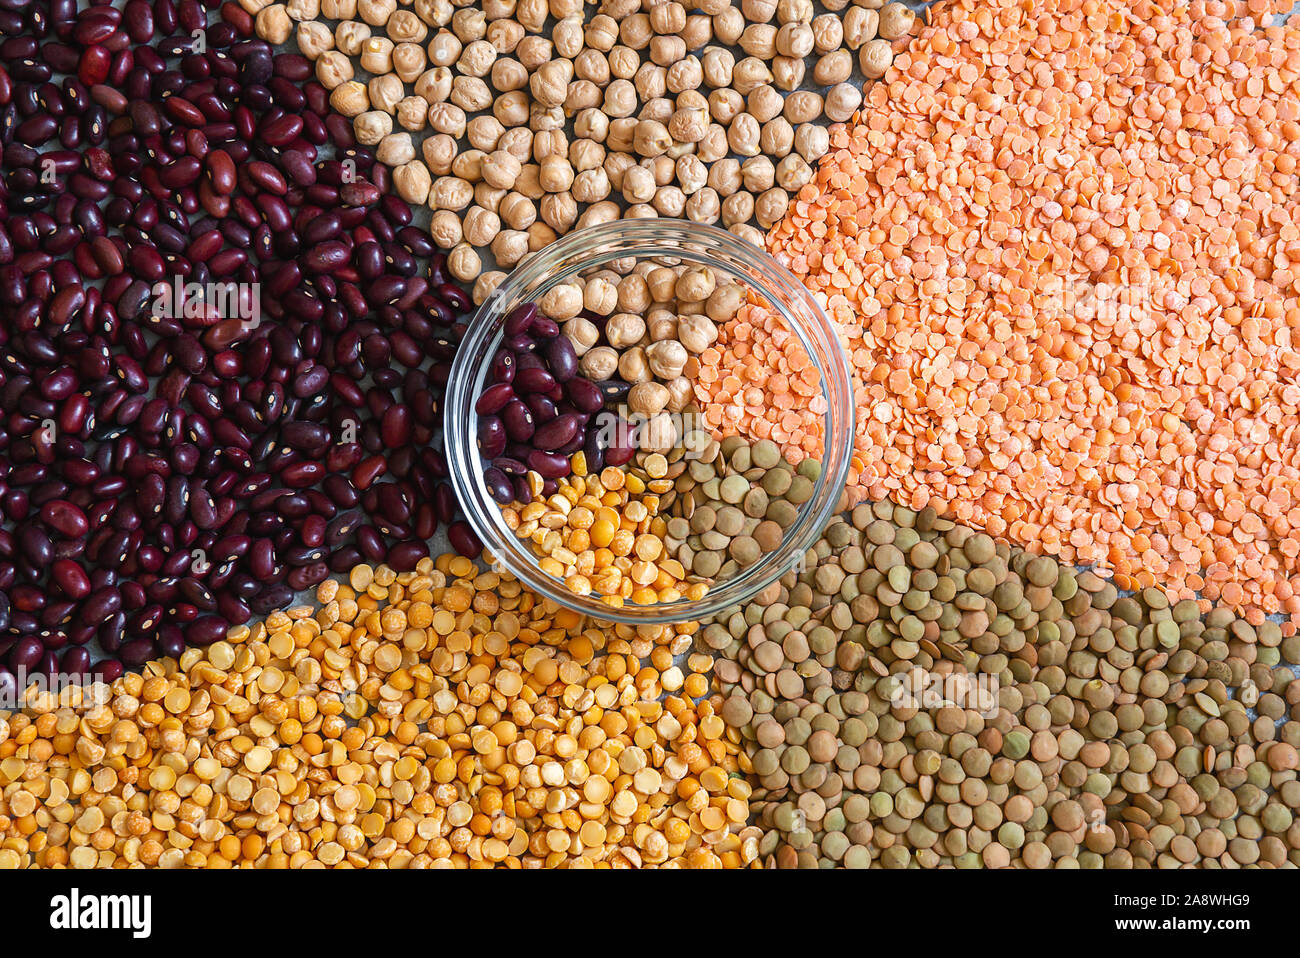 Geometric patterns of various colorful dried legumes beans for background Stock Photo